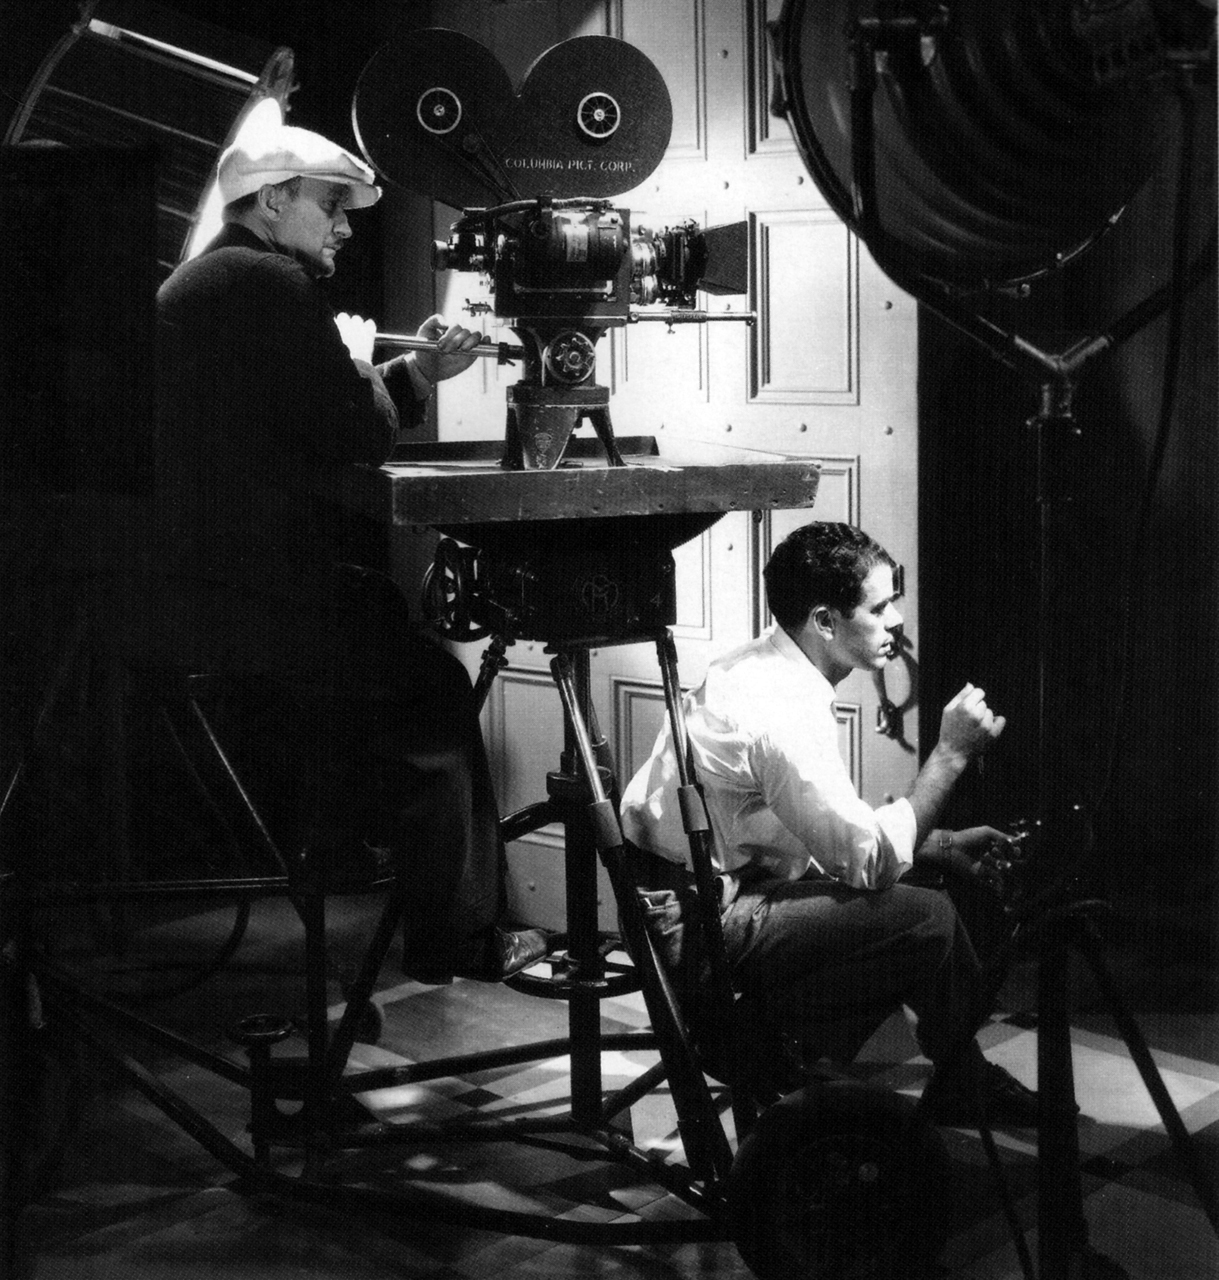 frank capra oscar mistakefrank capra iii, frank capra imdb, frank capra world war 2, frank capra best movies, frank capra wikipedia, frank capra why we fight, frank capra biographie, frank capra frank lloyd, frank capra oscar mistake, frank capra wonderful life, frank capra photos, frank capra movies, frank capra jr, frank capra quotes, frank capra biography, frank capra lost horizon, frank capra autobiography, frank capra the name above the title, frank capra la vie est belle, frank capra film